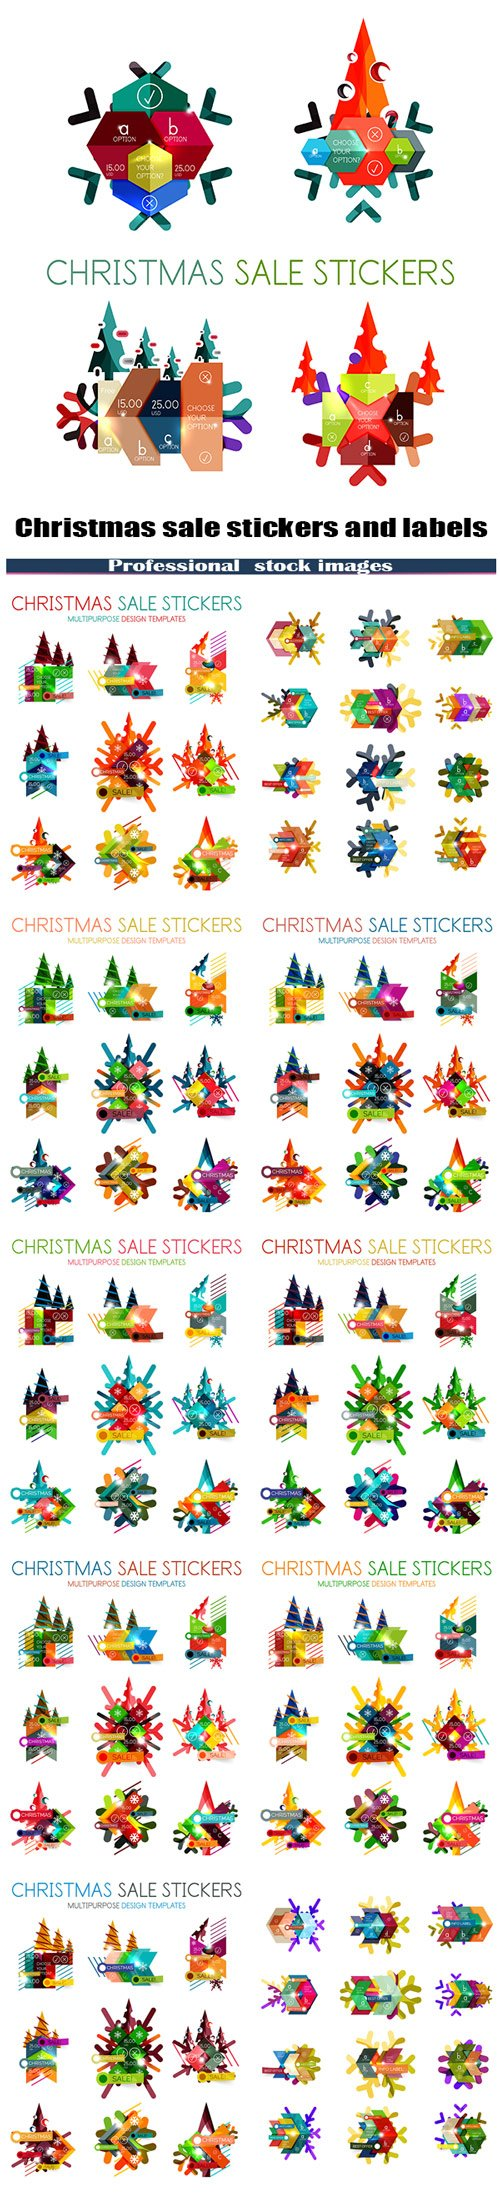 Christmas sale stickers and labels